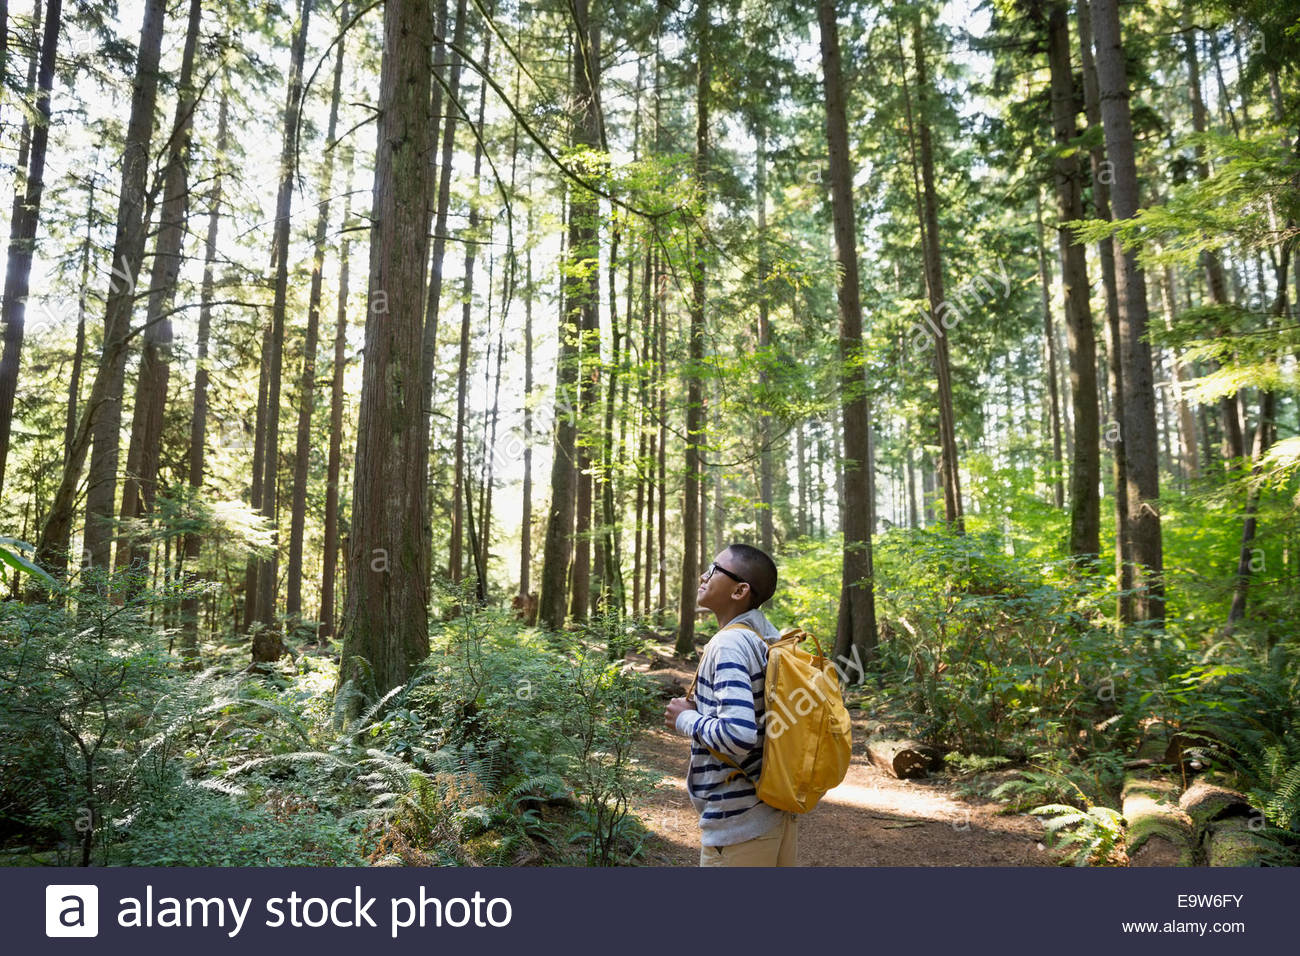 Curious boy looking up at trees in woods - Stock Image